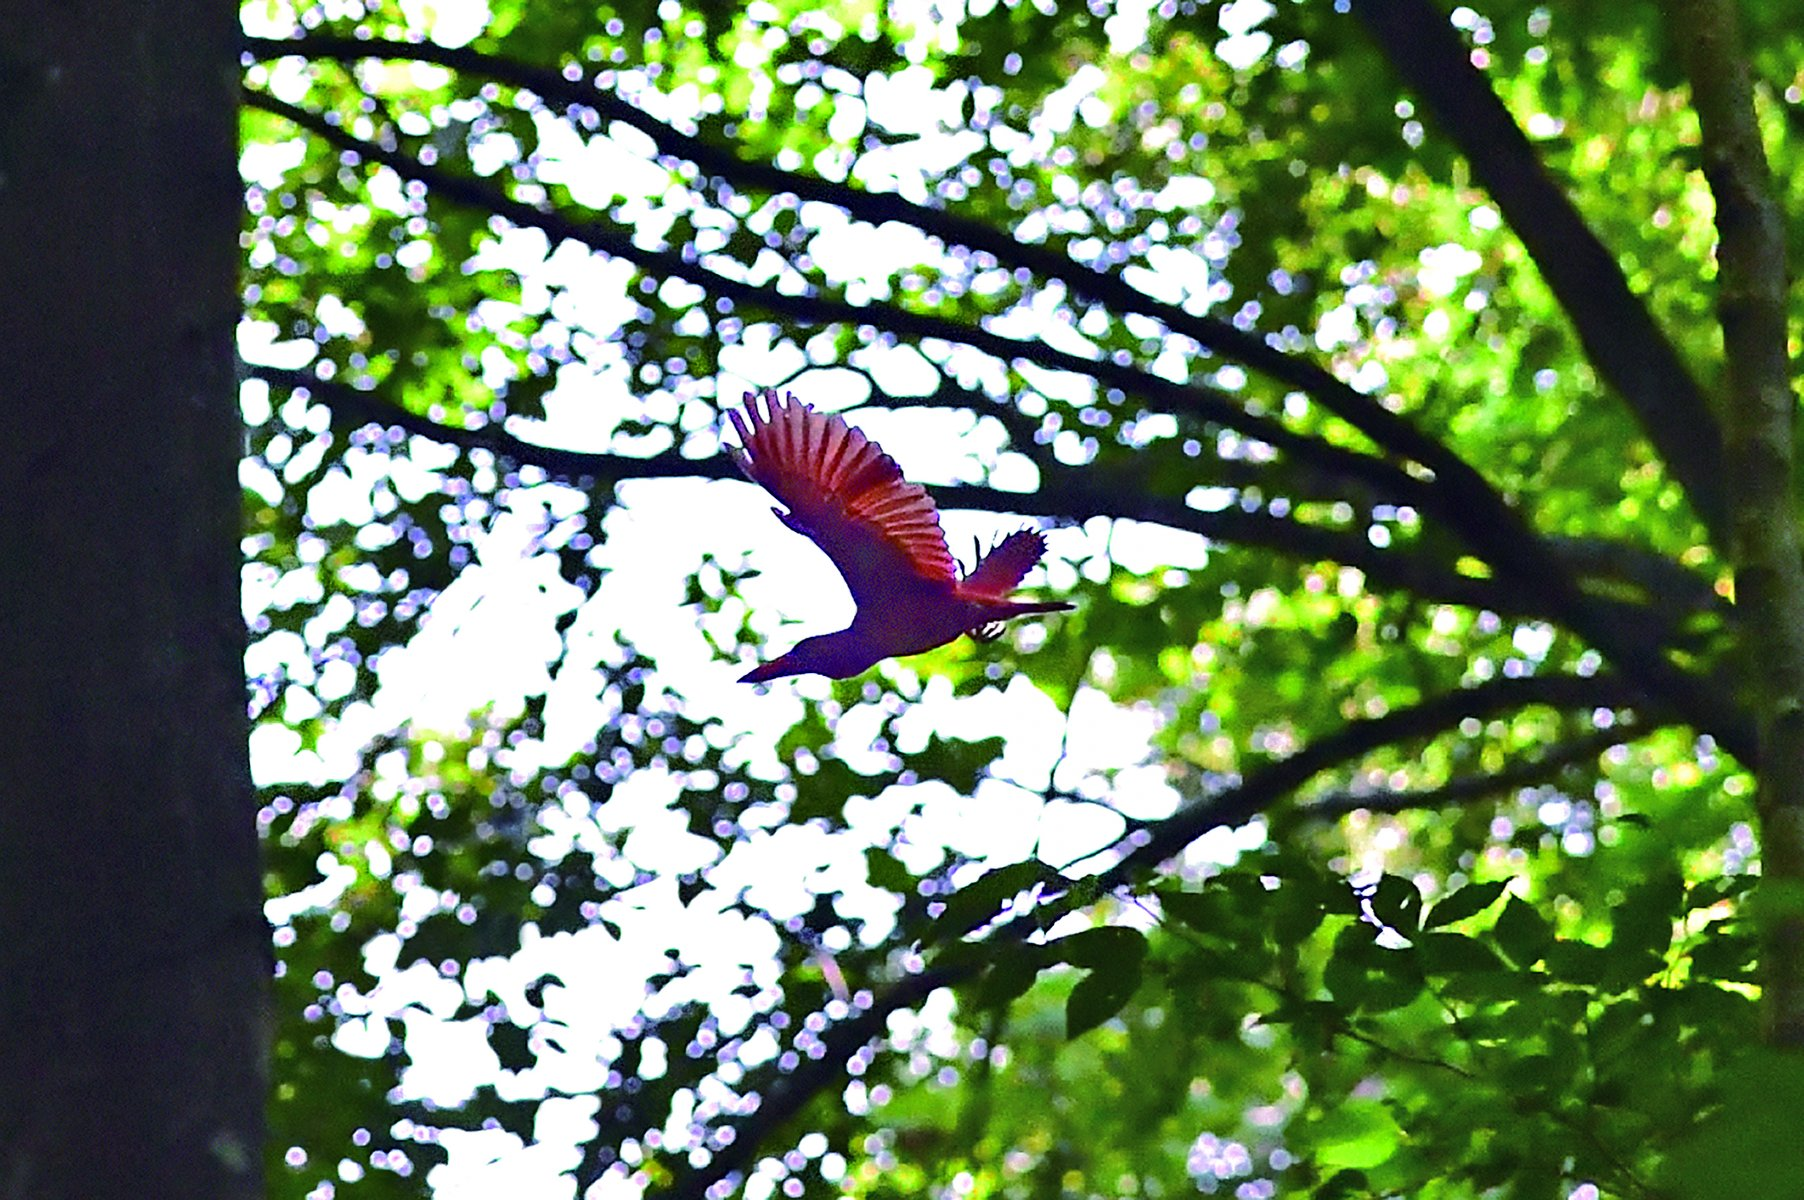 A Ruddy Kingfisher flying in the forest © HIH Princess Takamado